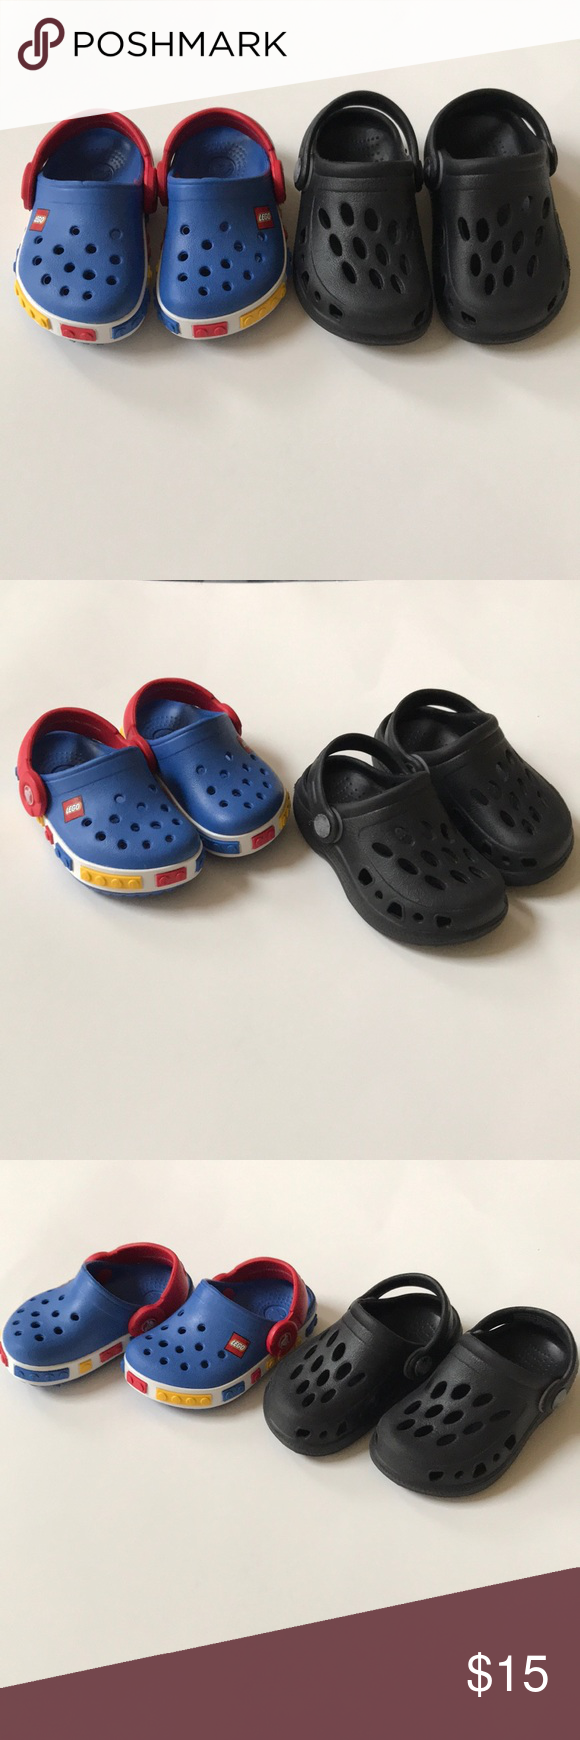 2 Pairs of Baby Crocs | Toddler shoes